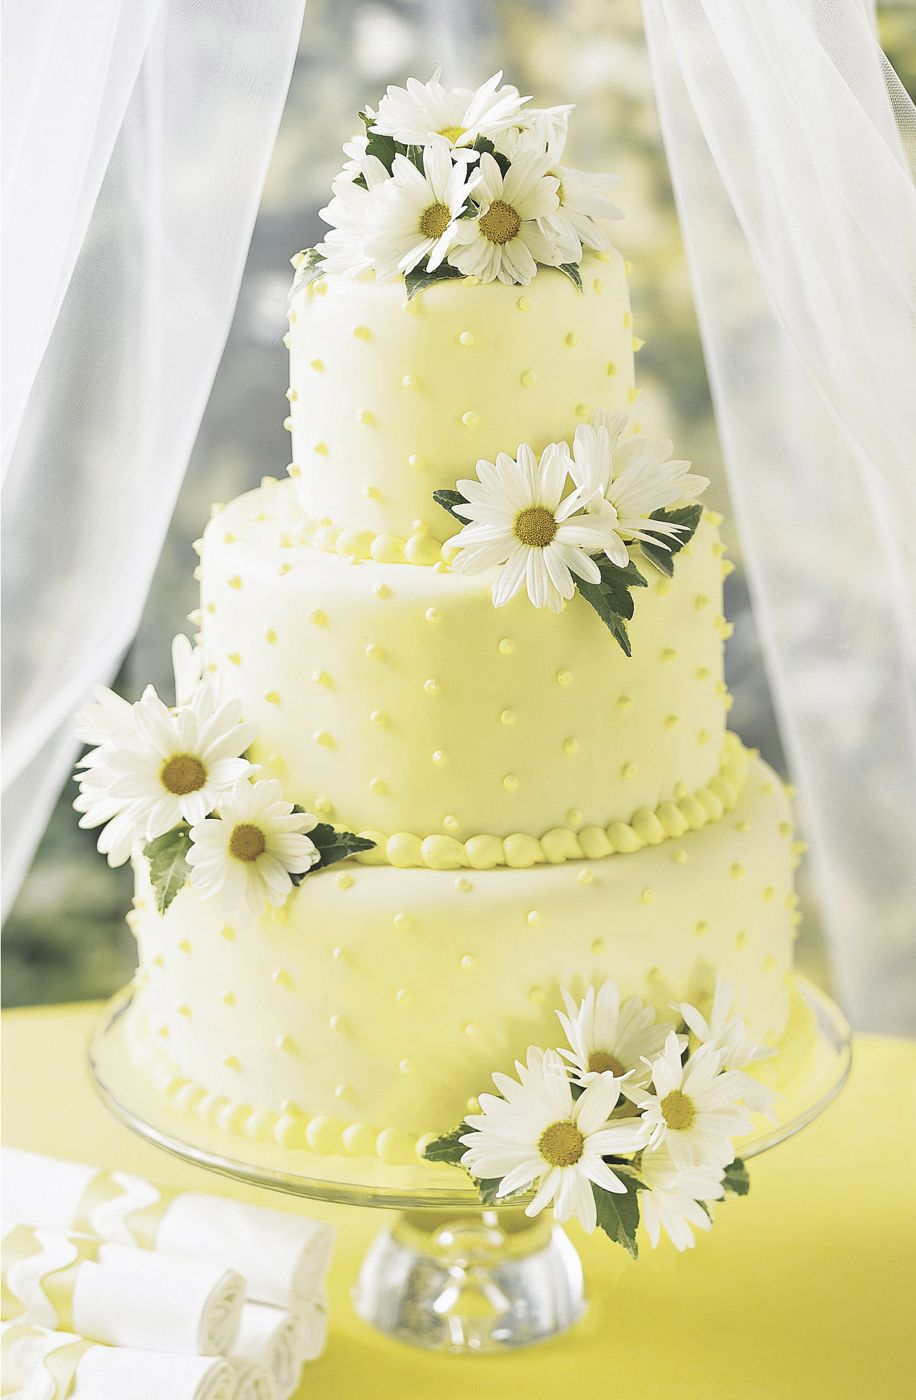 Gorgeous lemon yellow wedding cake with daisy decoration. | Wedding ...